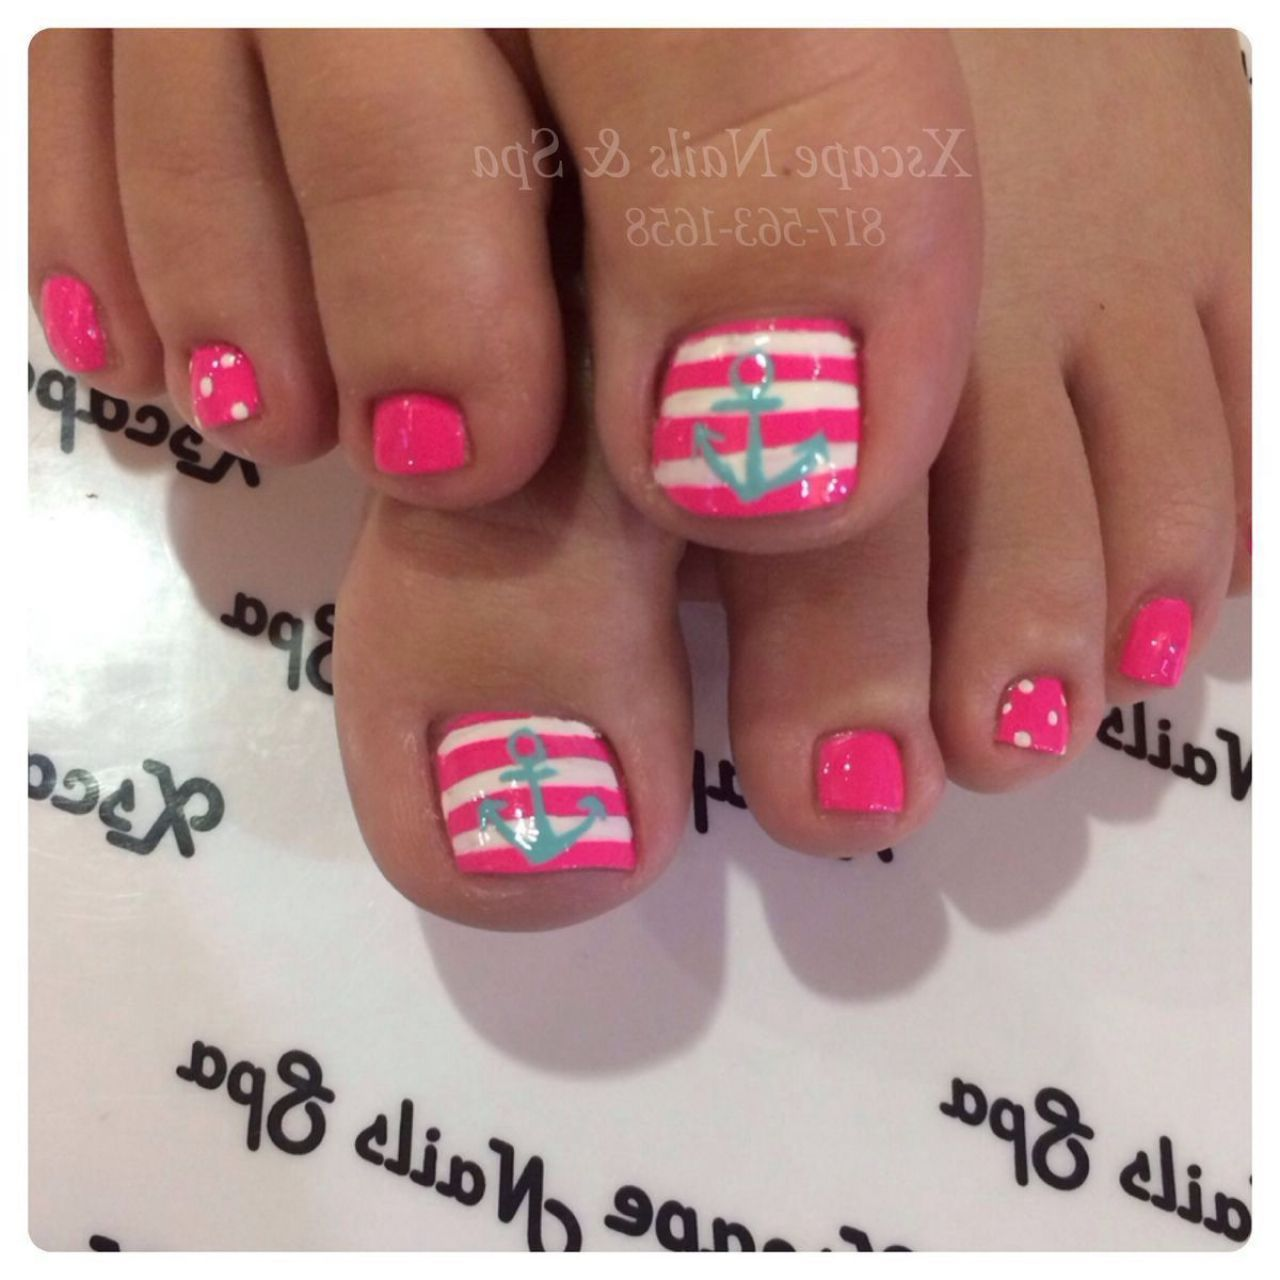 Toe Nail Designs Ideas dark toe nail designs picture 1 Find This Pin And More On Pedicure Ideas